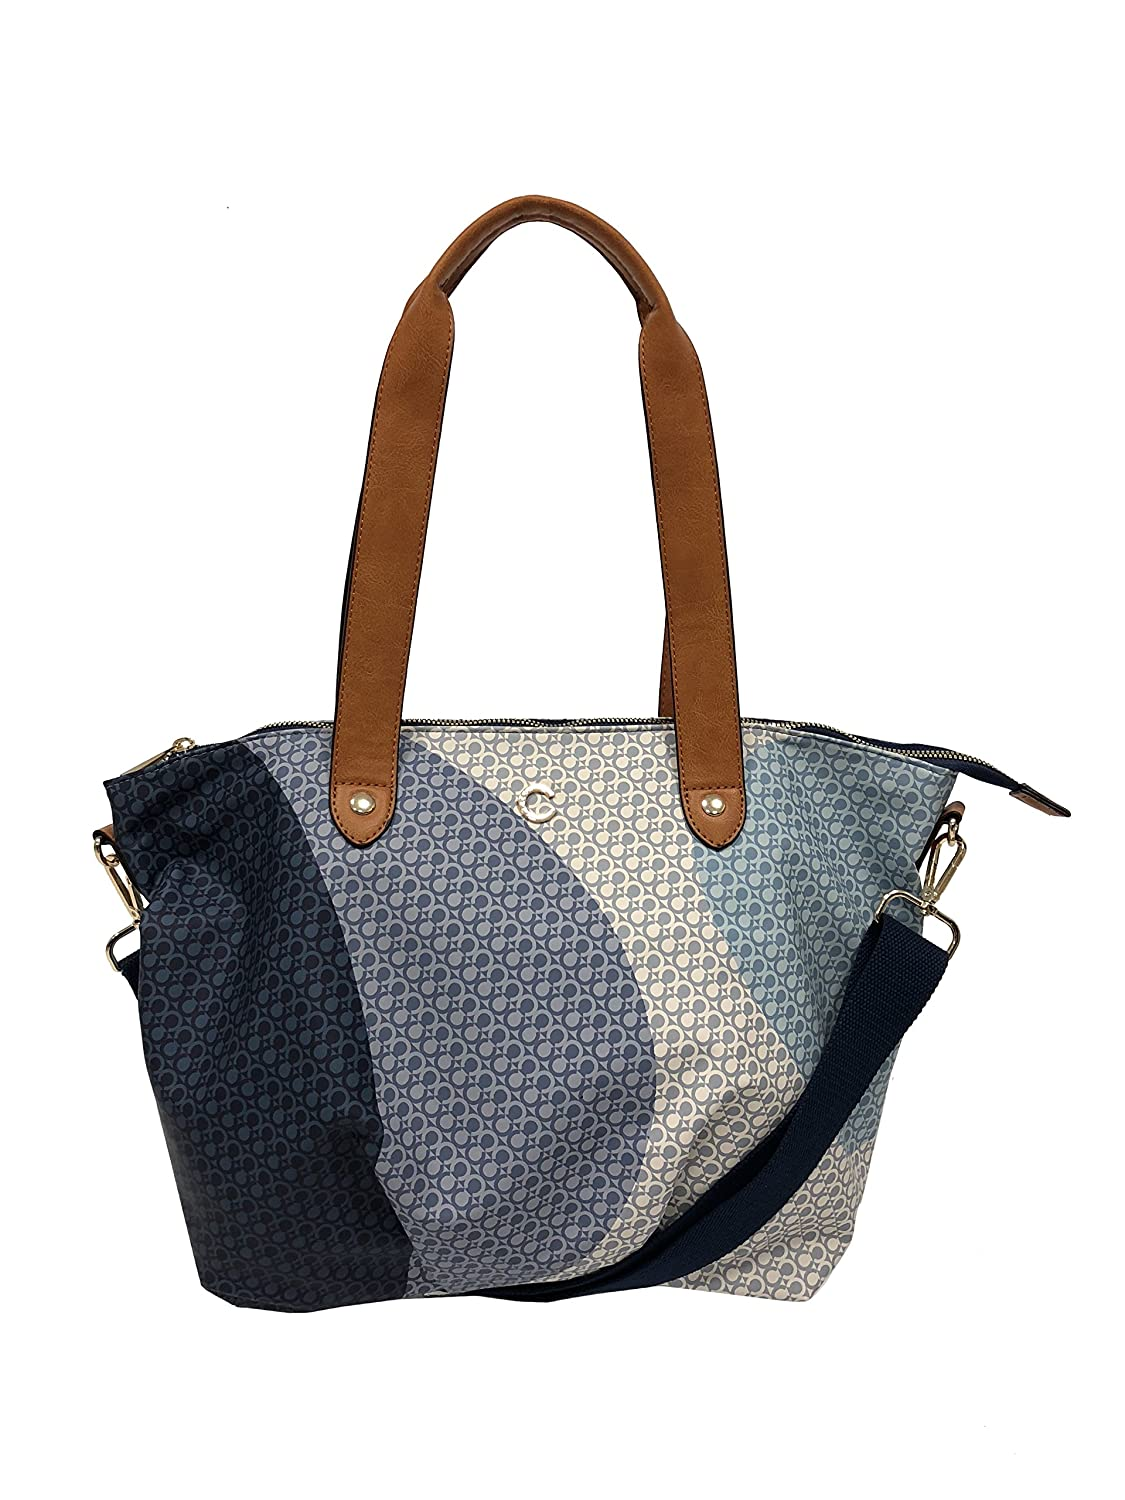 Carrera Accessori Borsa donna shopping bag blu mod. CB203